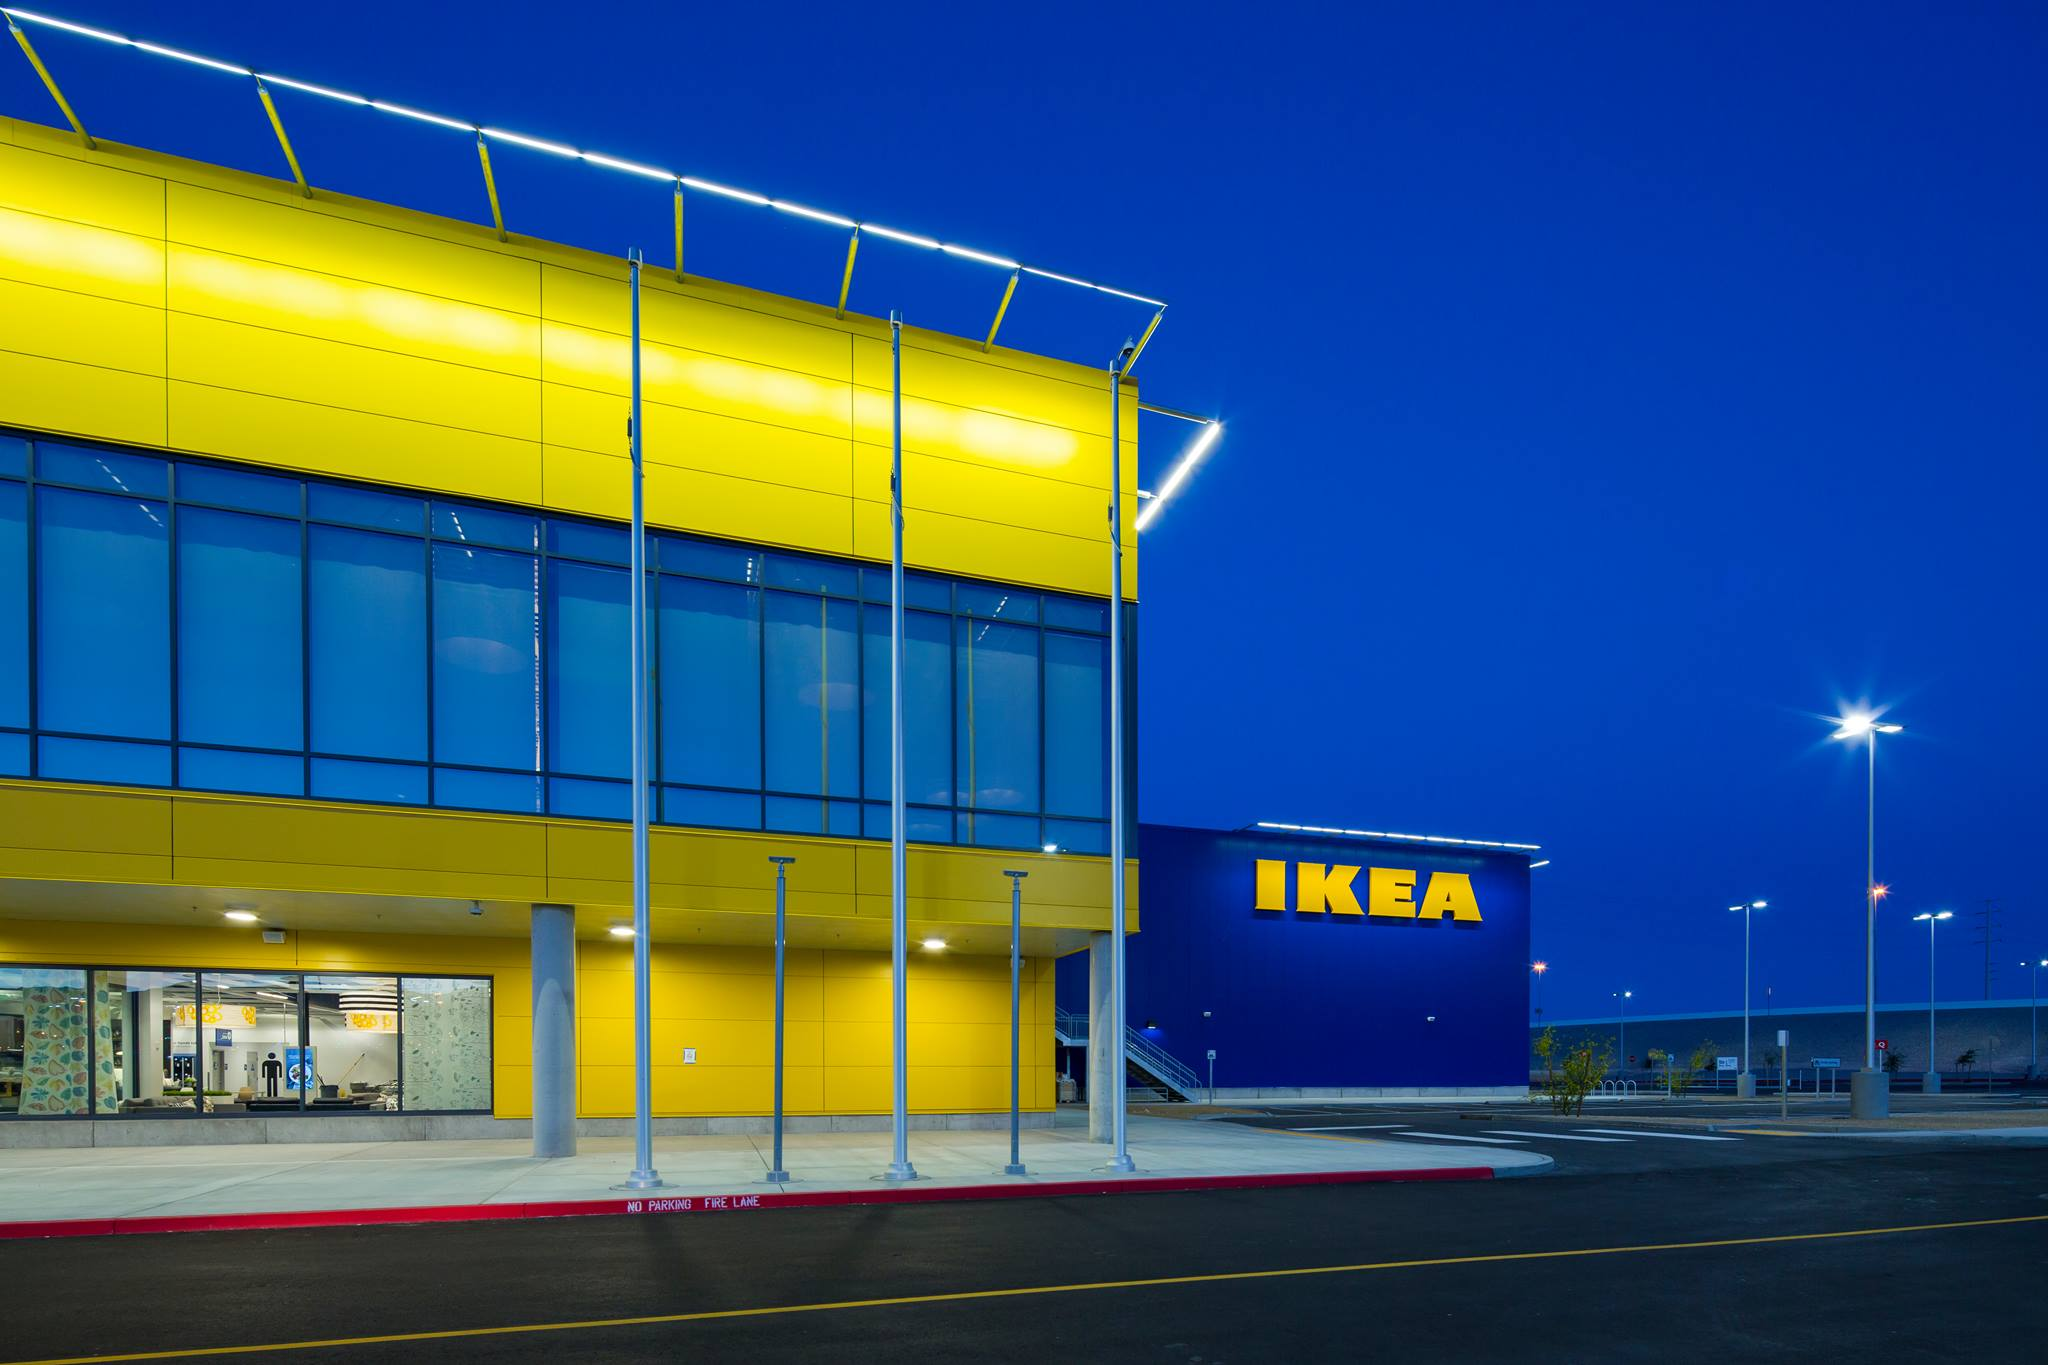 One of the Ikea project that R&O Construction completed